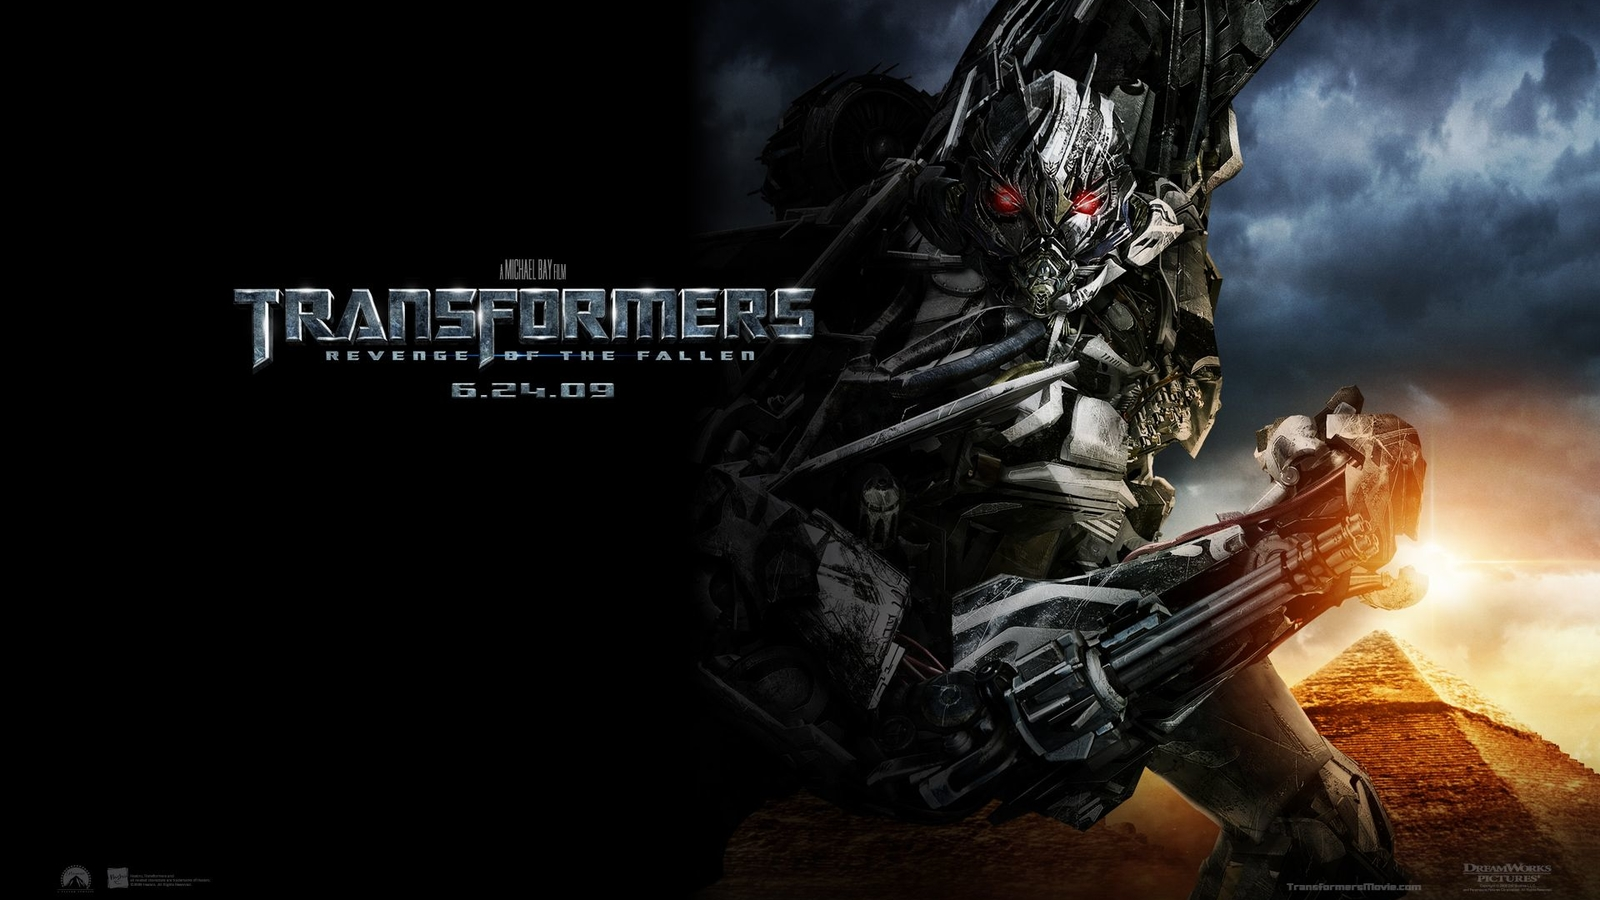 Transformers Classic Desktop Wallpaper 49602